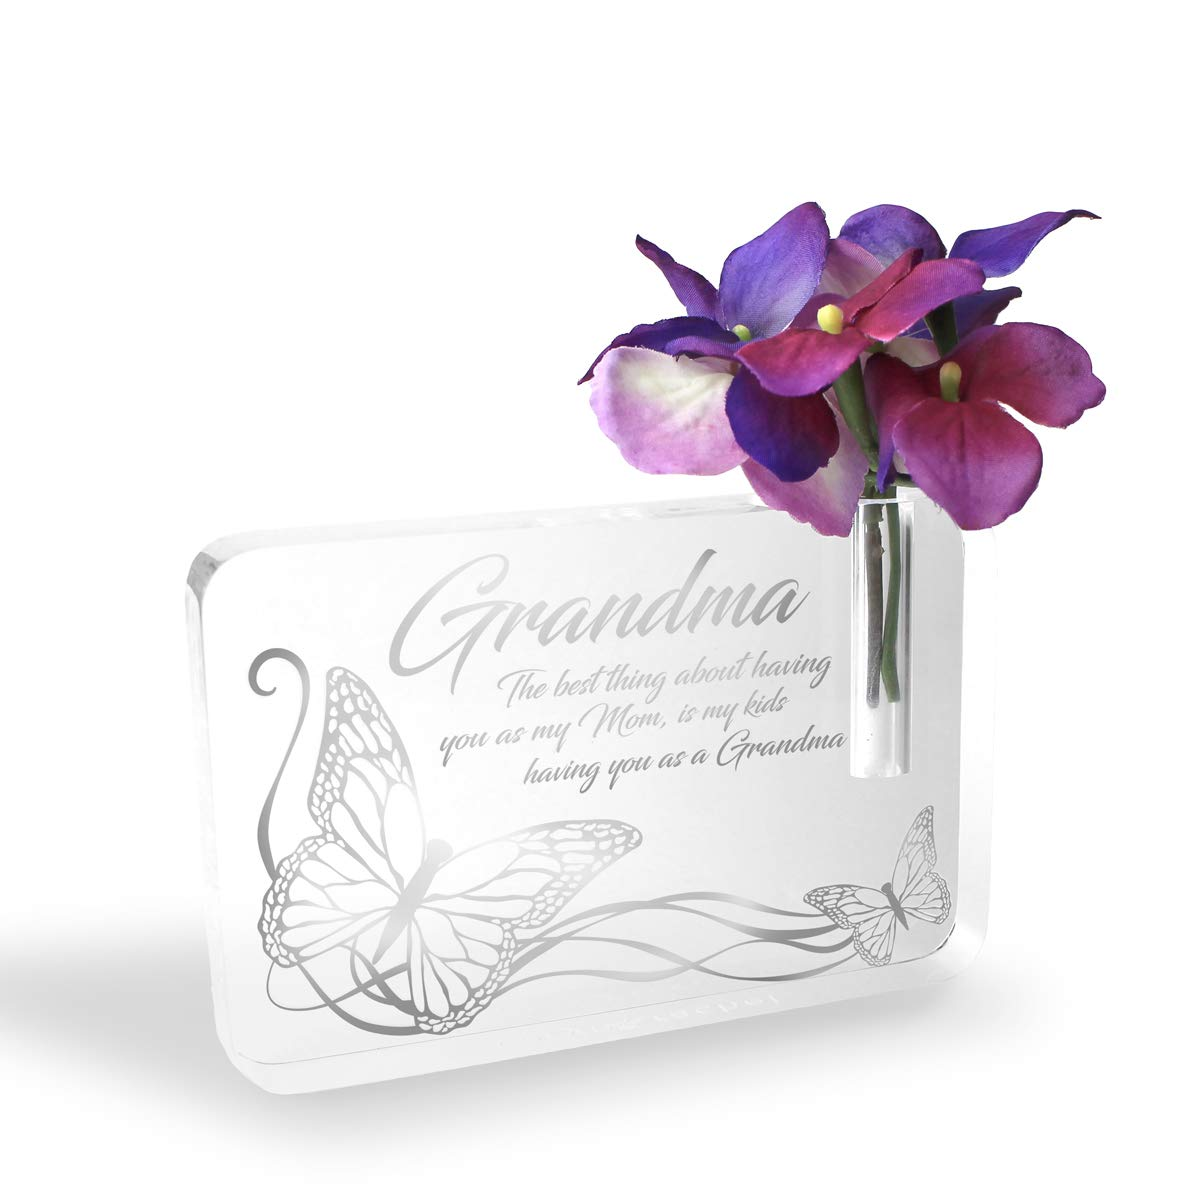 Caryn Rachel Grandma Plaque Bud Vase Engraved Plaque for Grandma for Mothers Day | Quality Crafted Lucite Grandma Decor Gift, A from Daughter with an Engraved Quote and Butterfly Gifts for Women